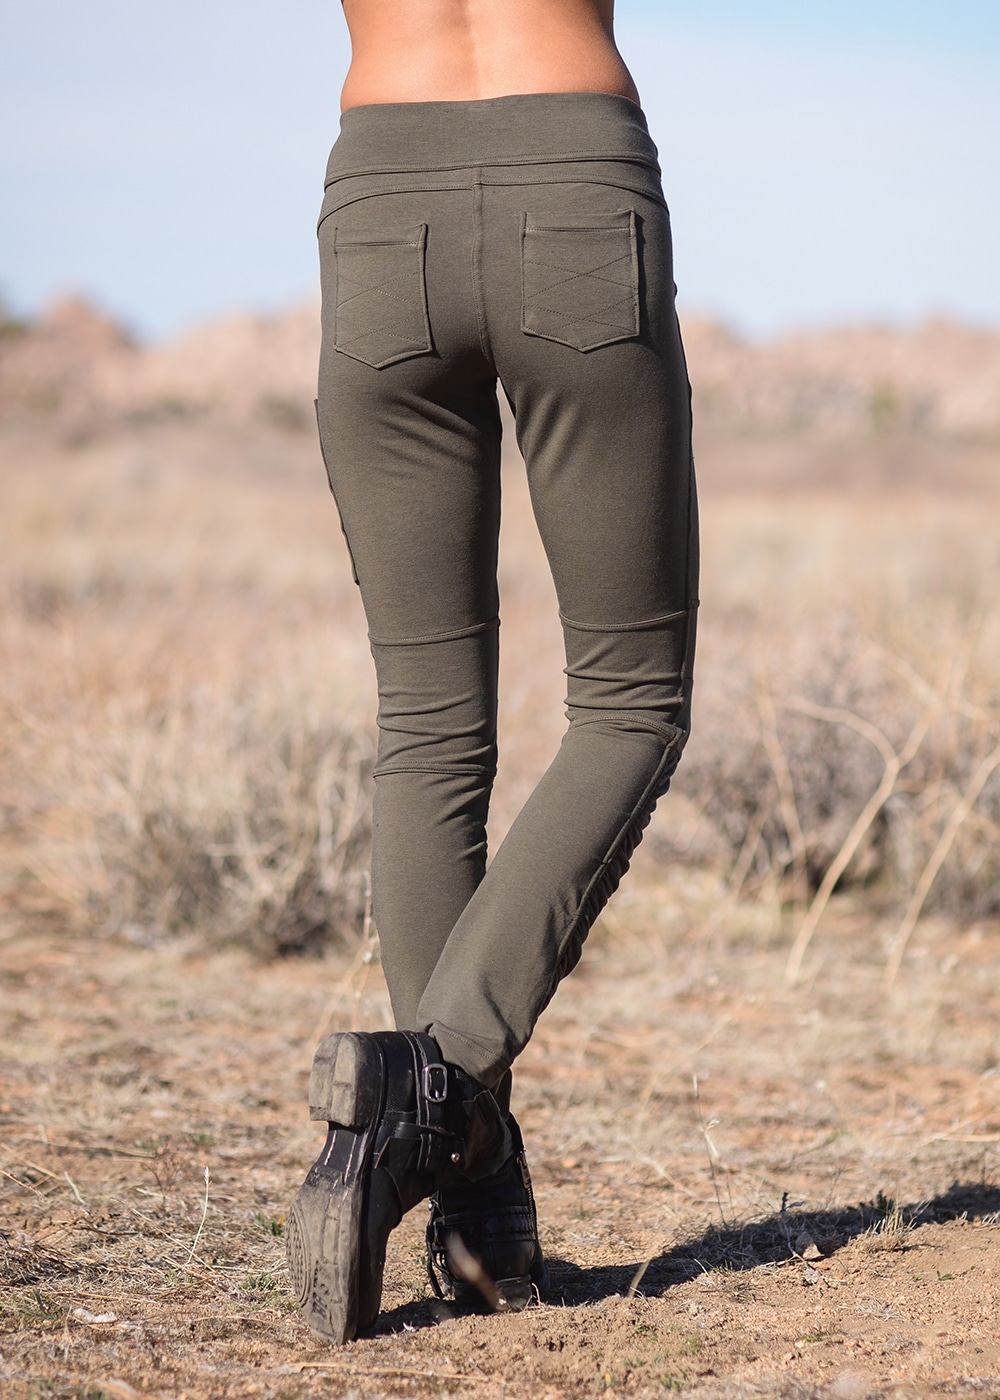 Bamboo and Organic Cotton Drifter Pants in Olive Green by Nomads Hemp Wear Back